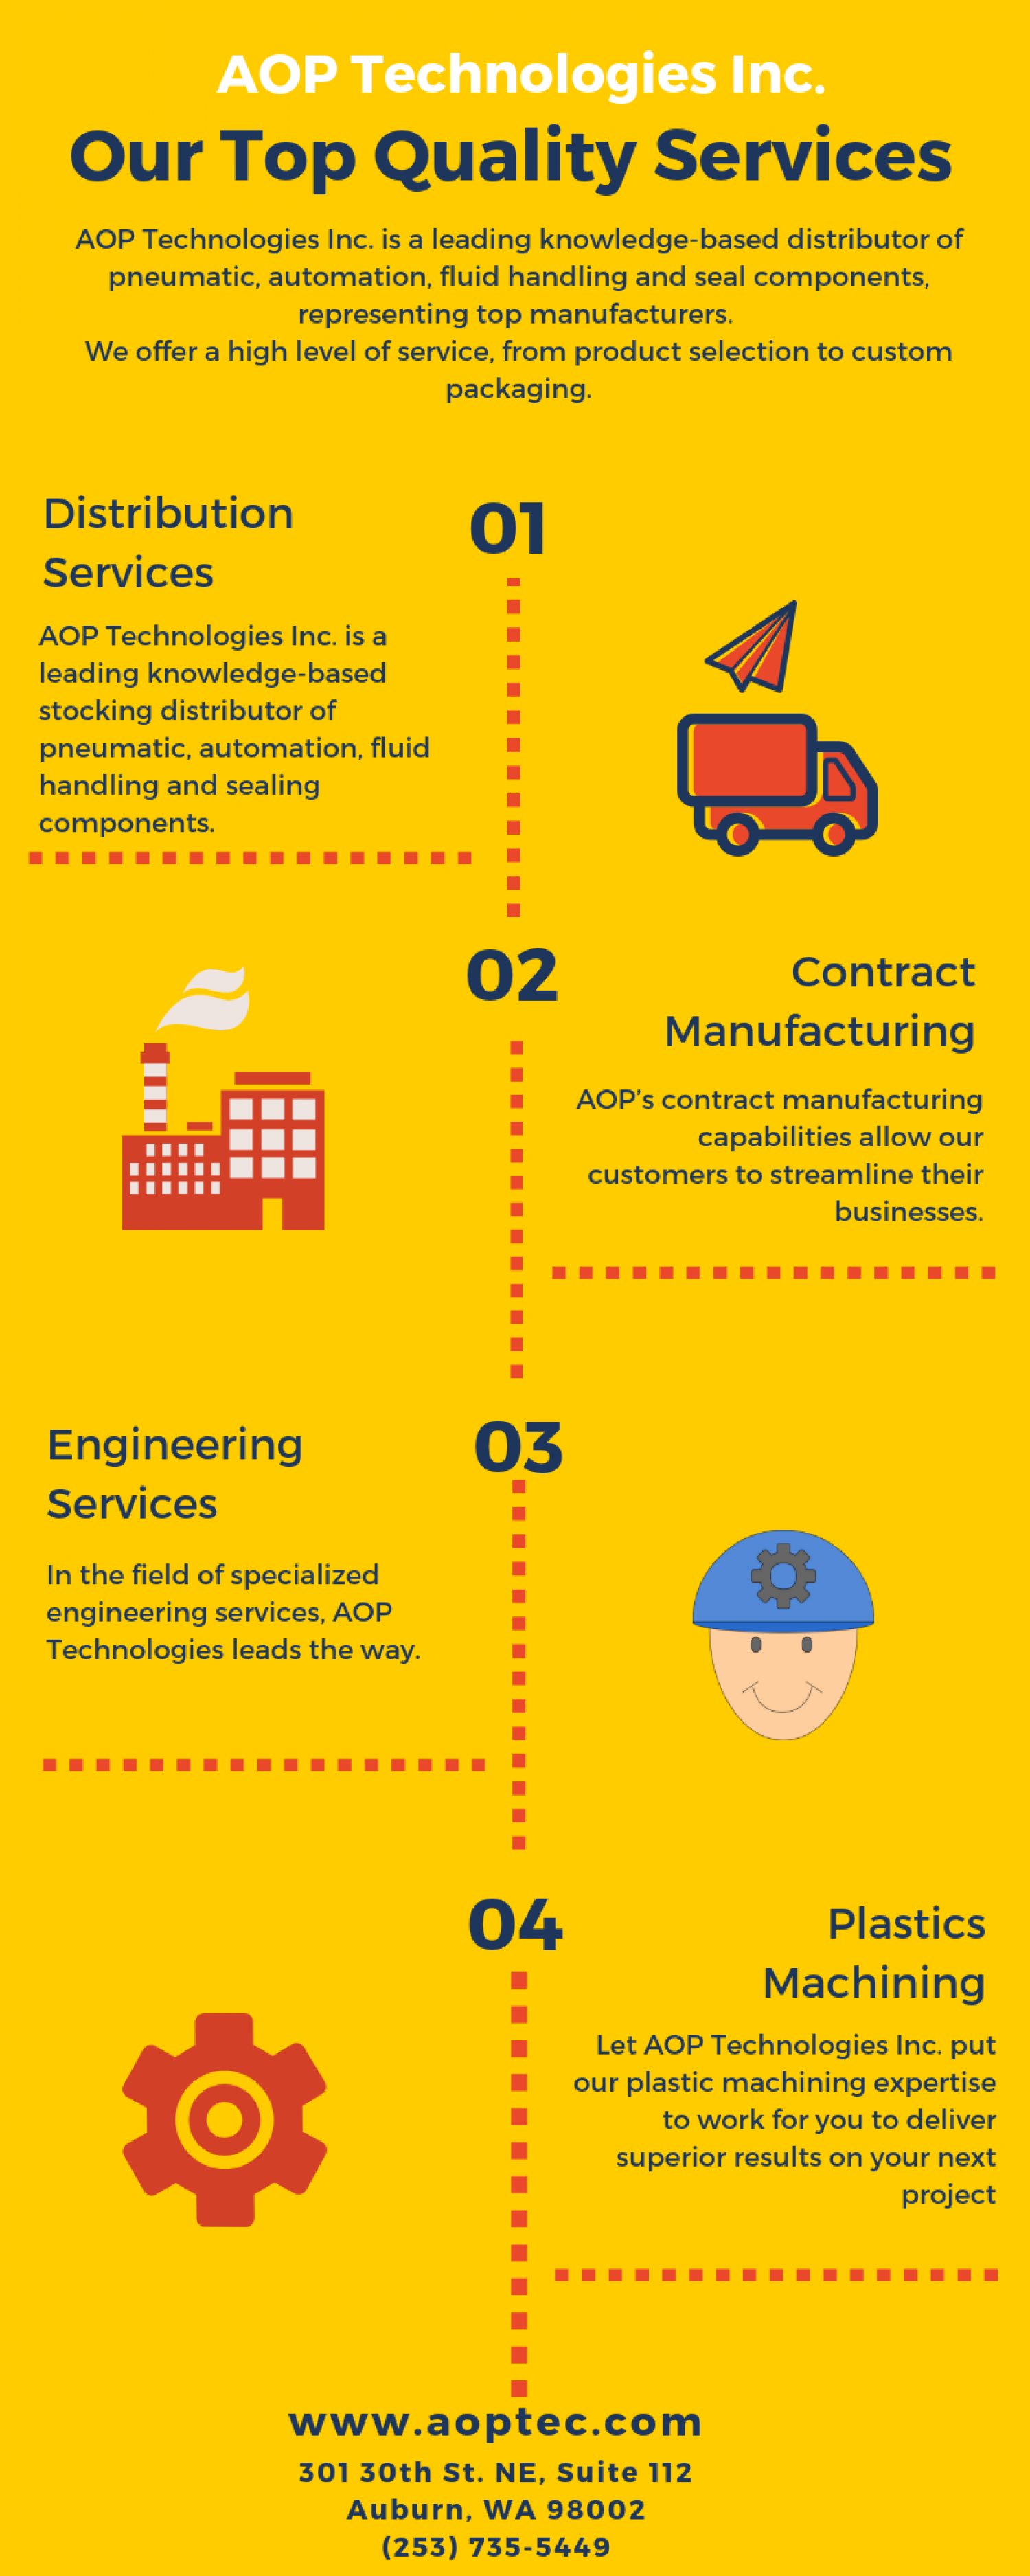 AOP Technologies - Top Quality Services Infographic